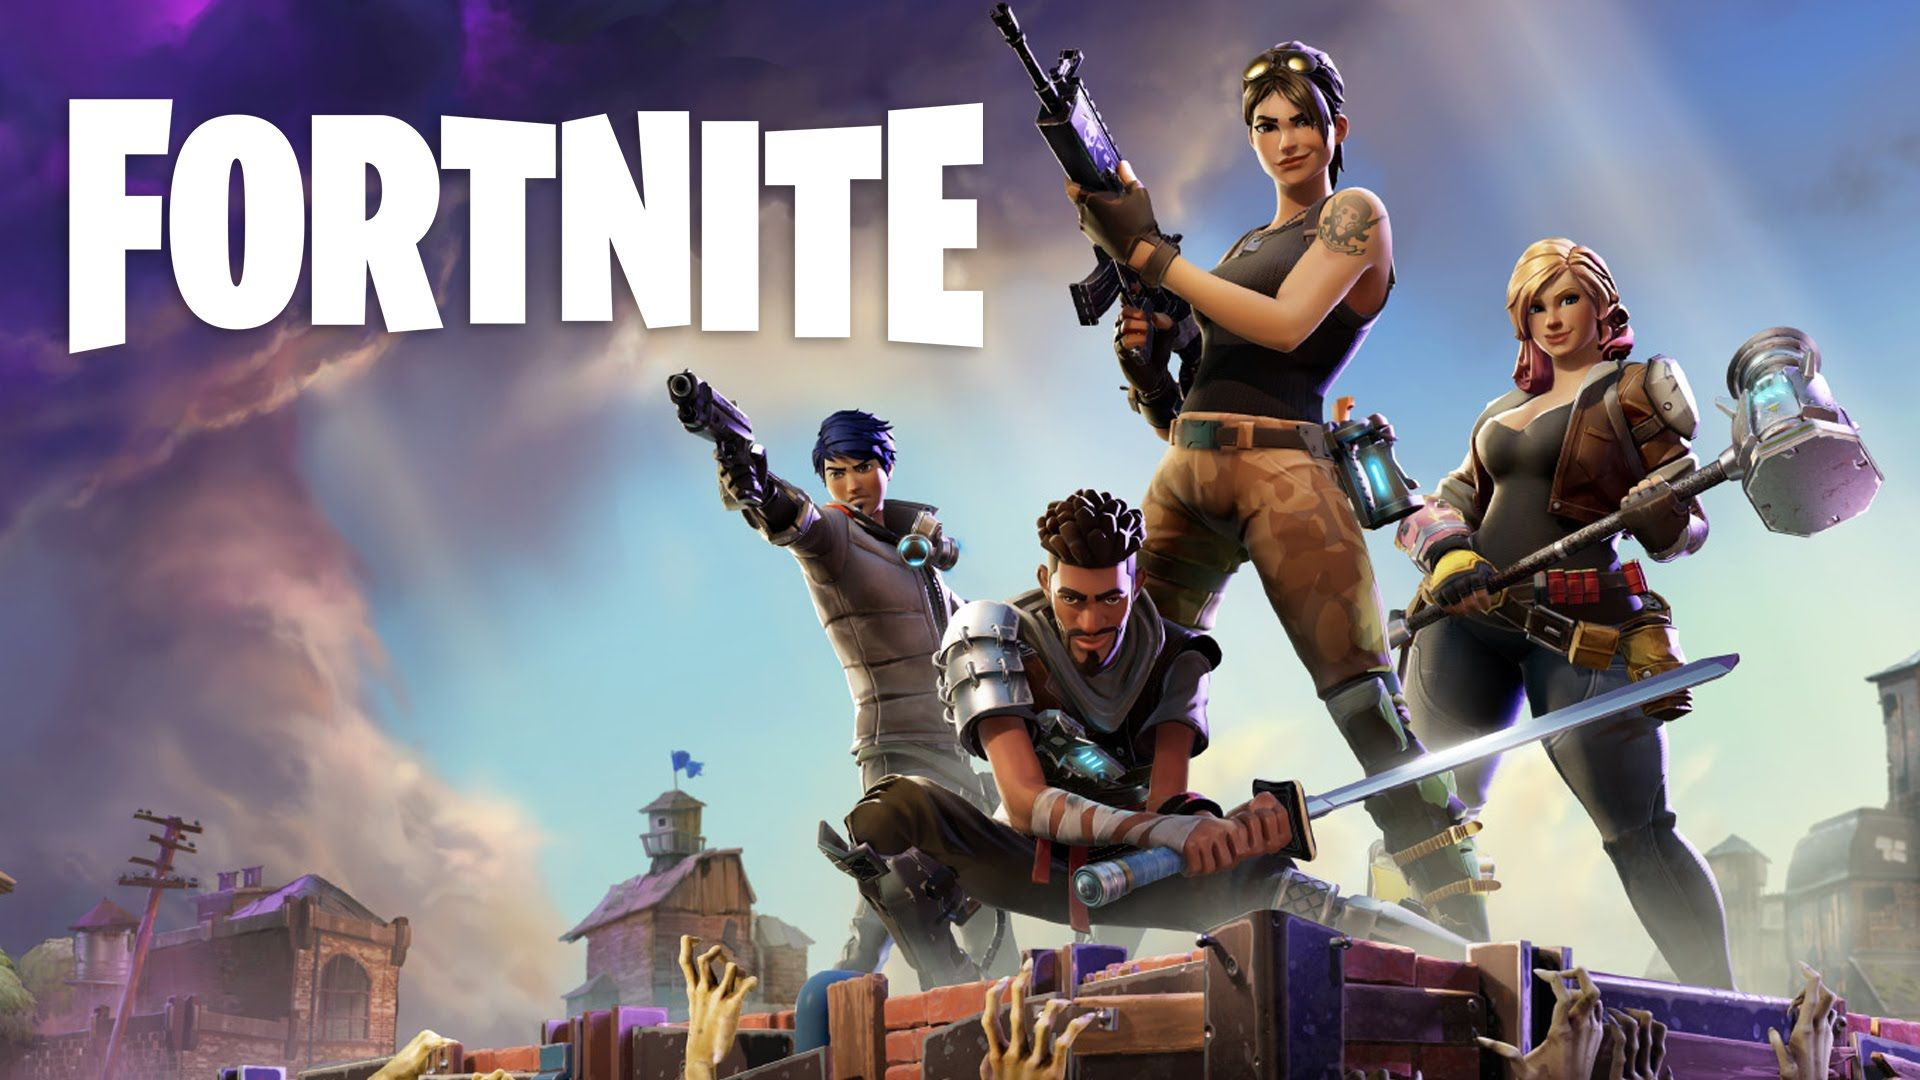 Can you play fortnite mobile with xbox account on pc together